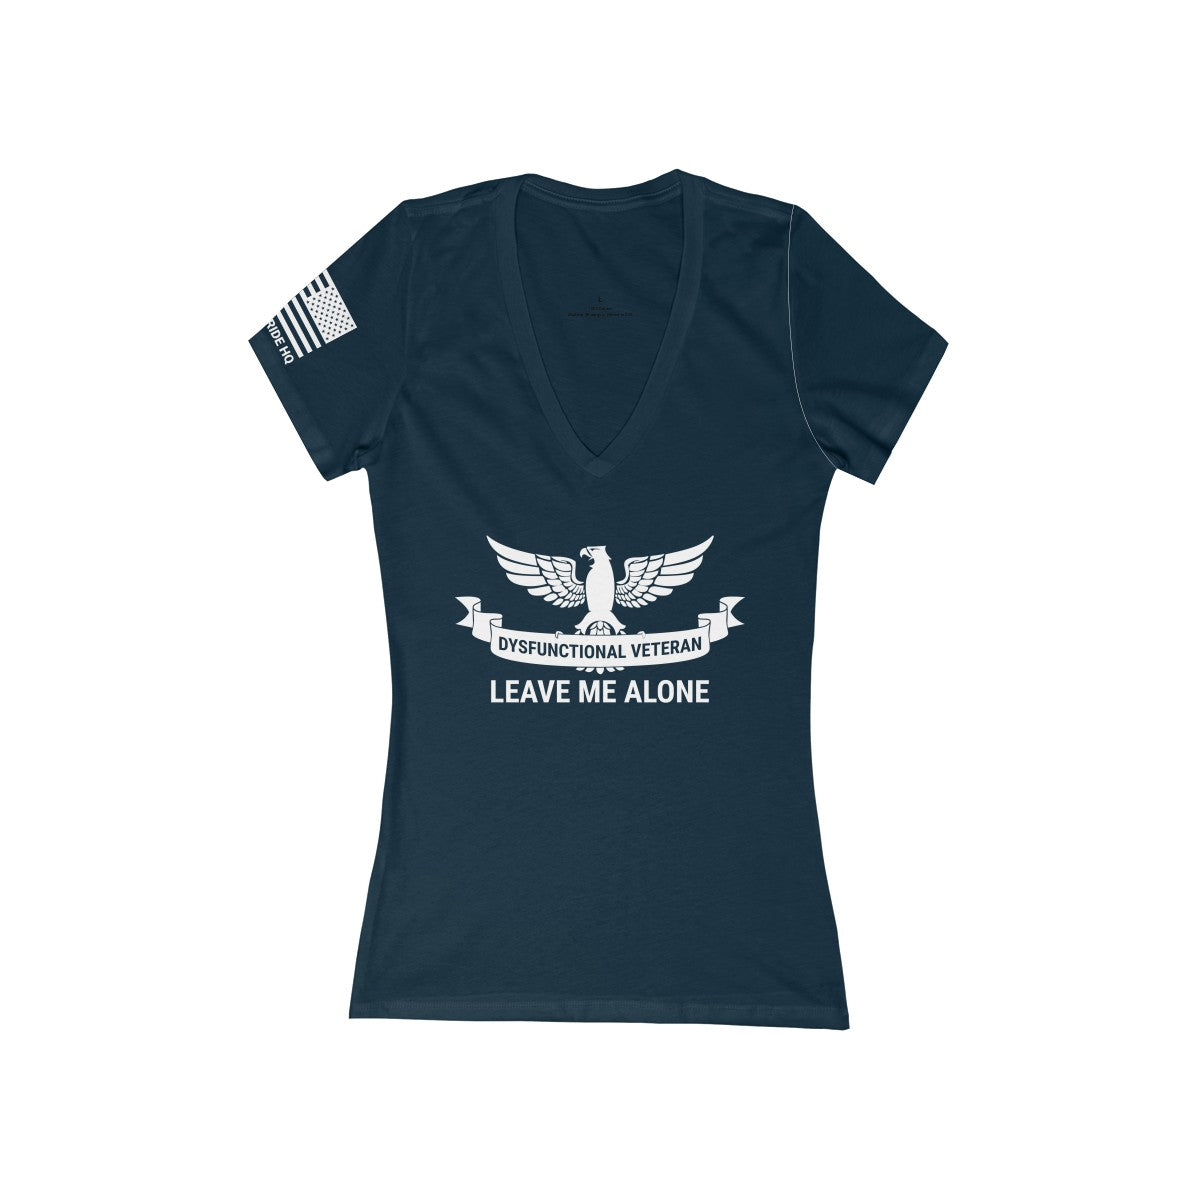 Dysfunctional Veteran - Leave Me Alone Women's V-Neck Tee